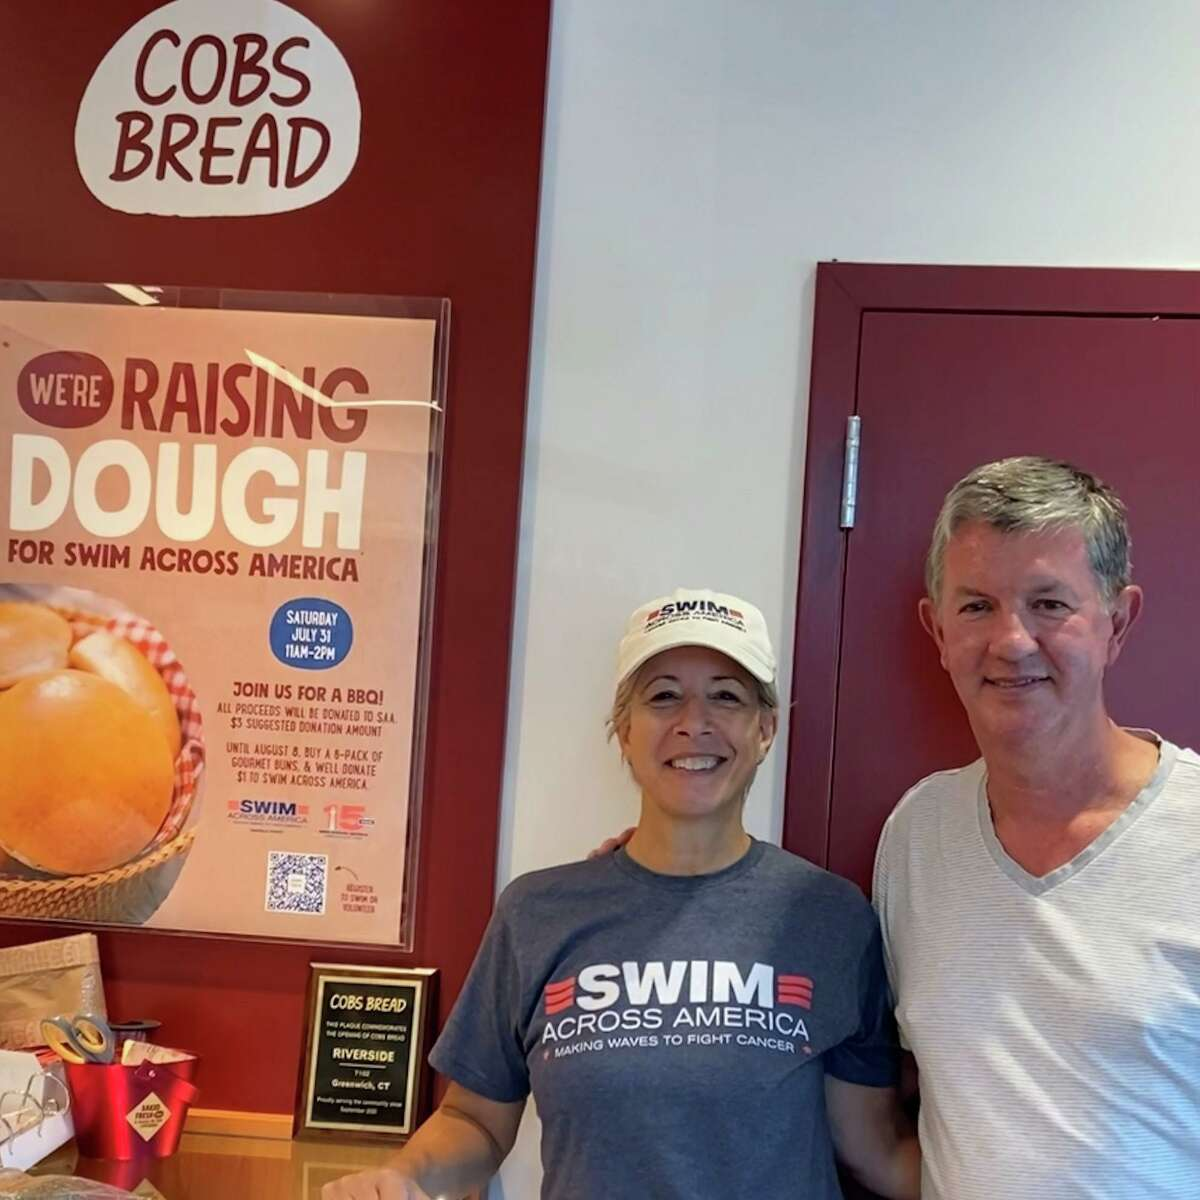 Nancy Carr, co-chair of Swim Across America Fairfield County, with Rob Hyden, owner of the COBS Bread Riverside location. COBS Bread is raising dough for the nonprofit to support cancer research.